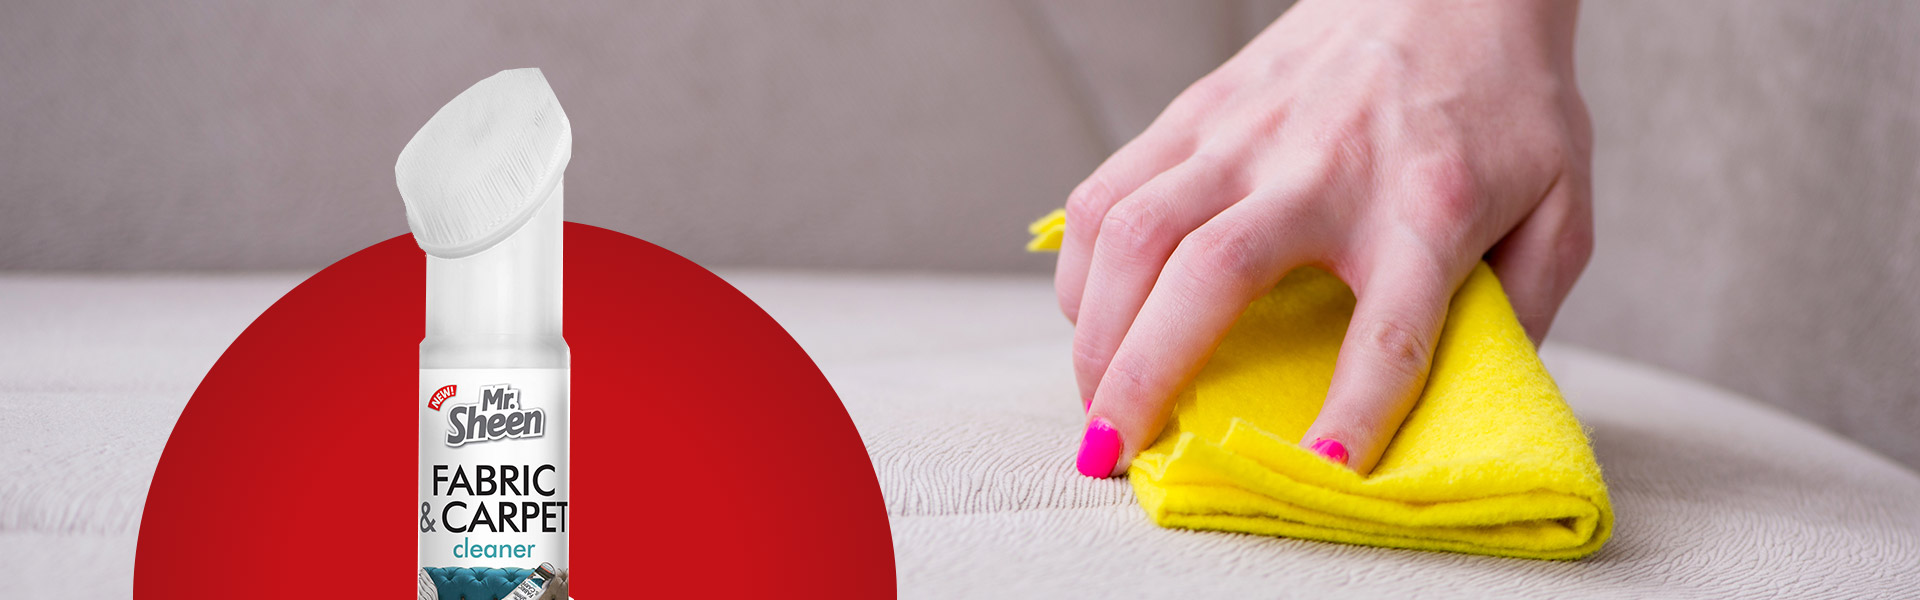 mr-sheen-fabric-carpet-cleaner-products-header